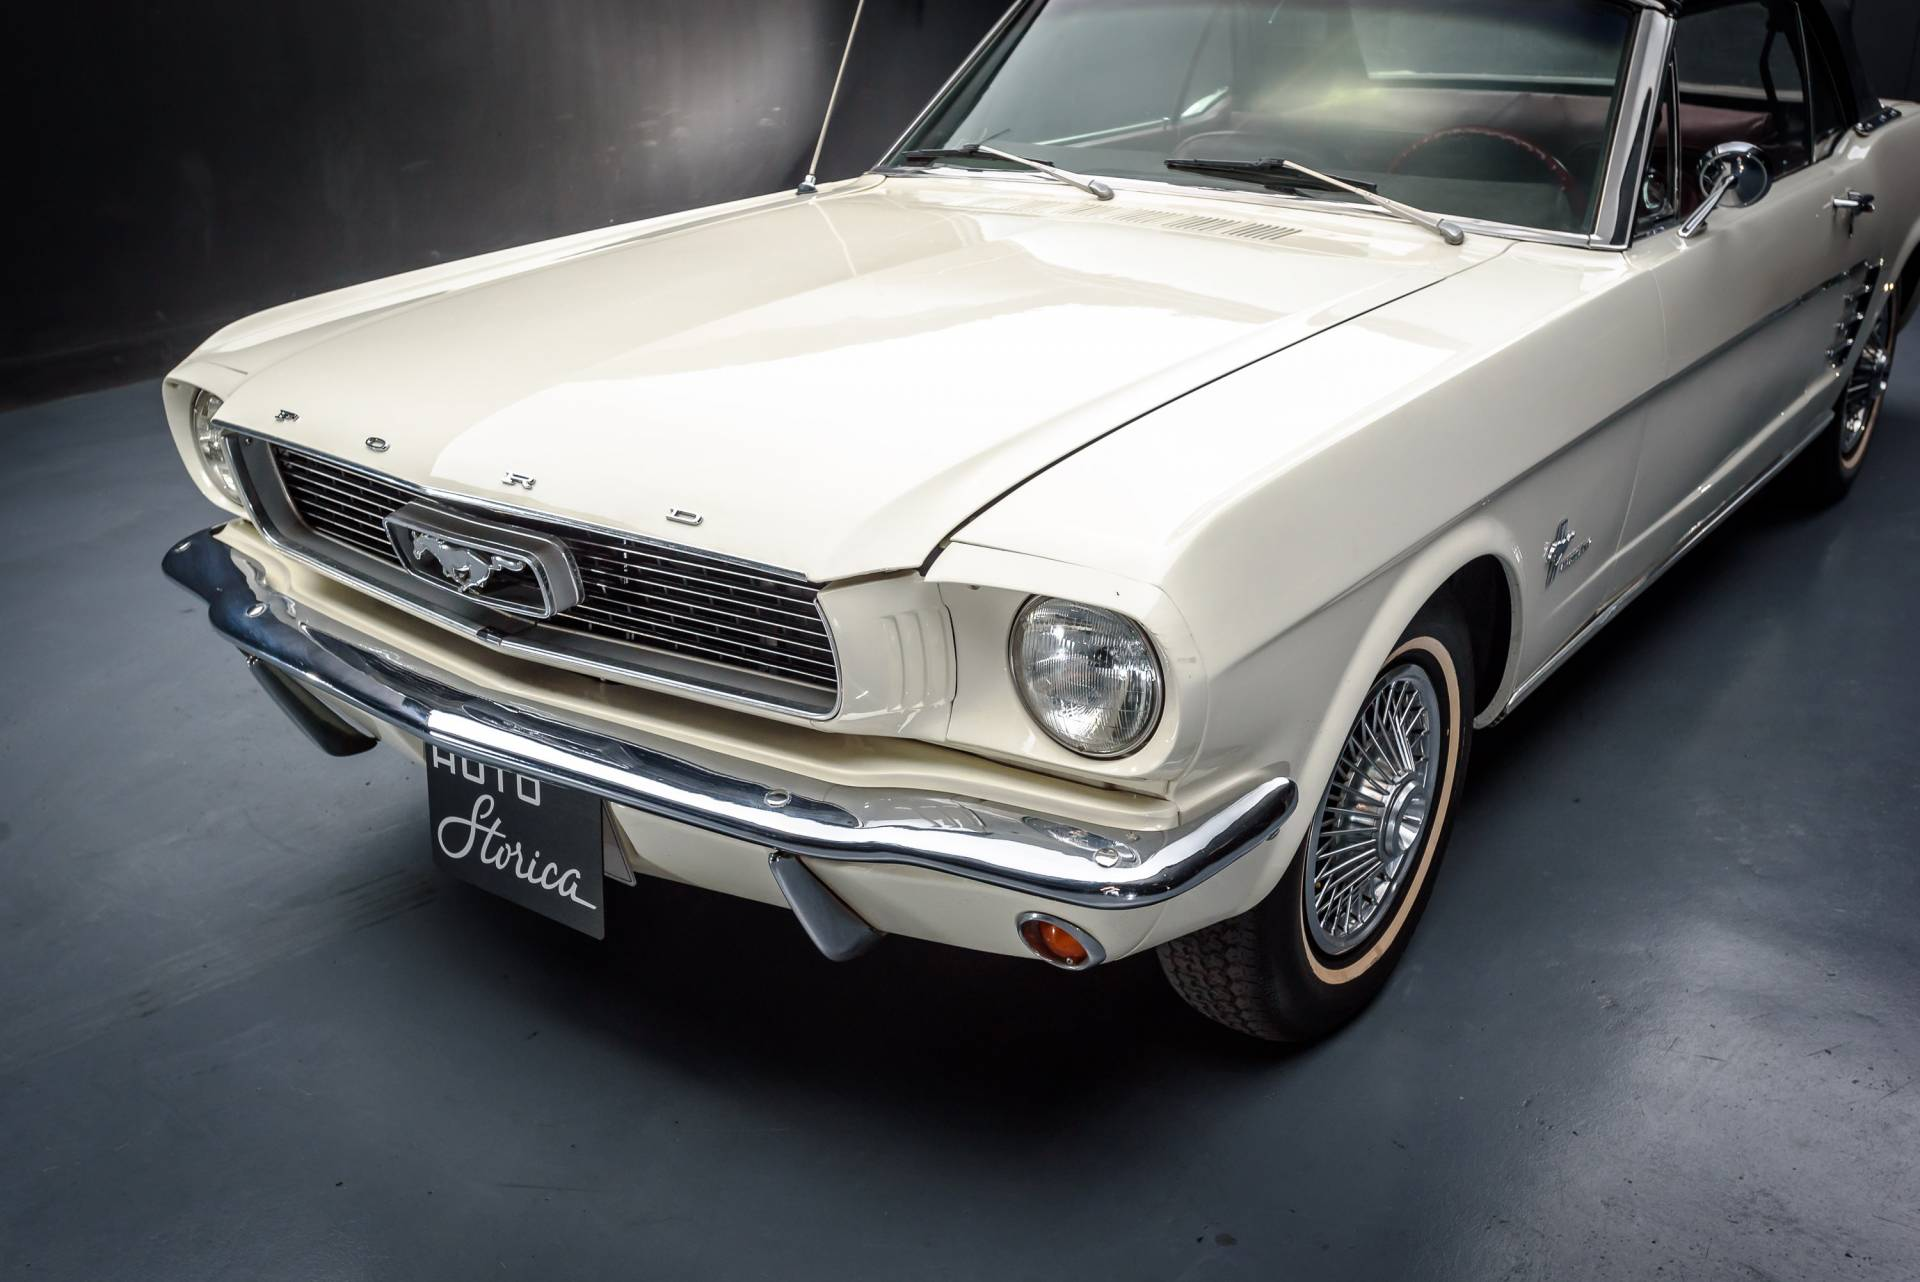 For Sale: Ford Mustang 200 (1966) offered for GBP 29,846